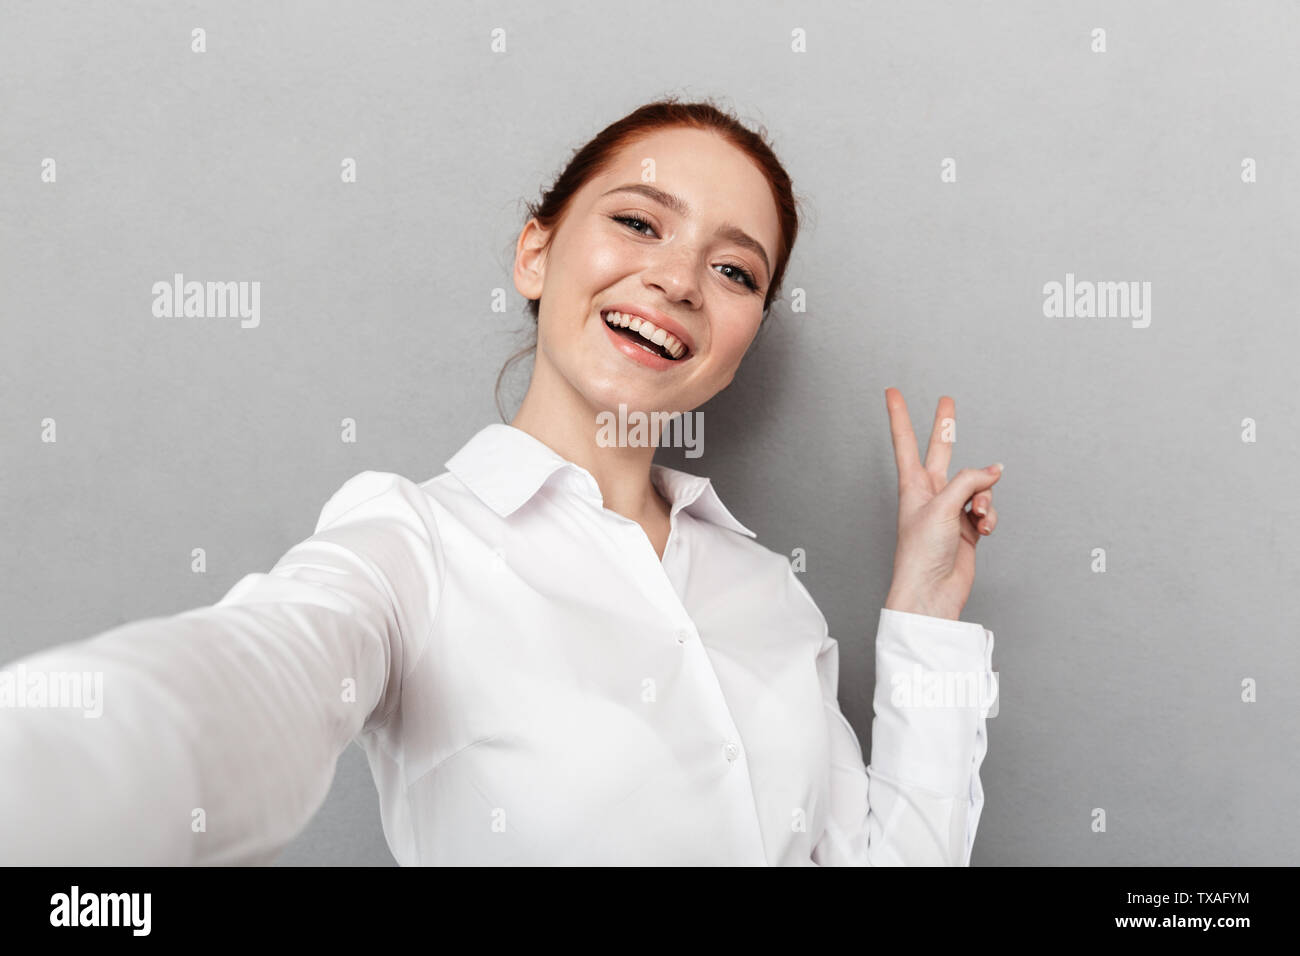 Image of successful redhead businesswoman 20s in formal wear smiling at camera while taking selfie photo isolated over gray background - Stock Image